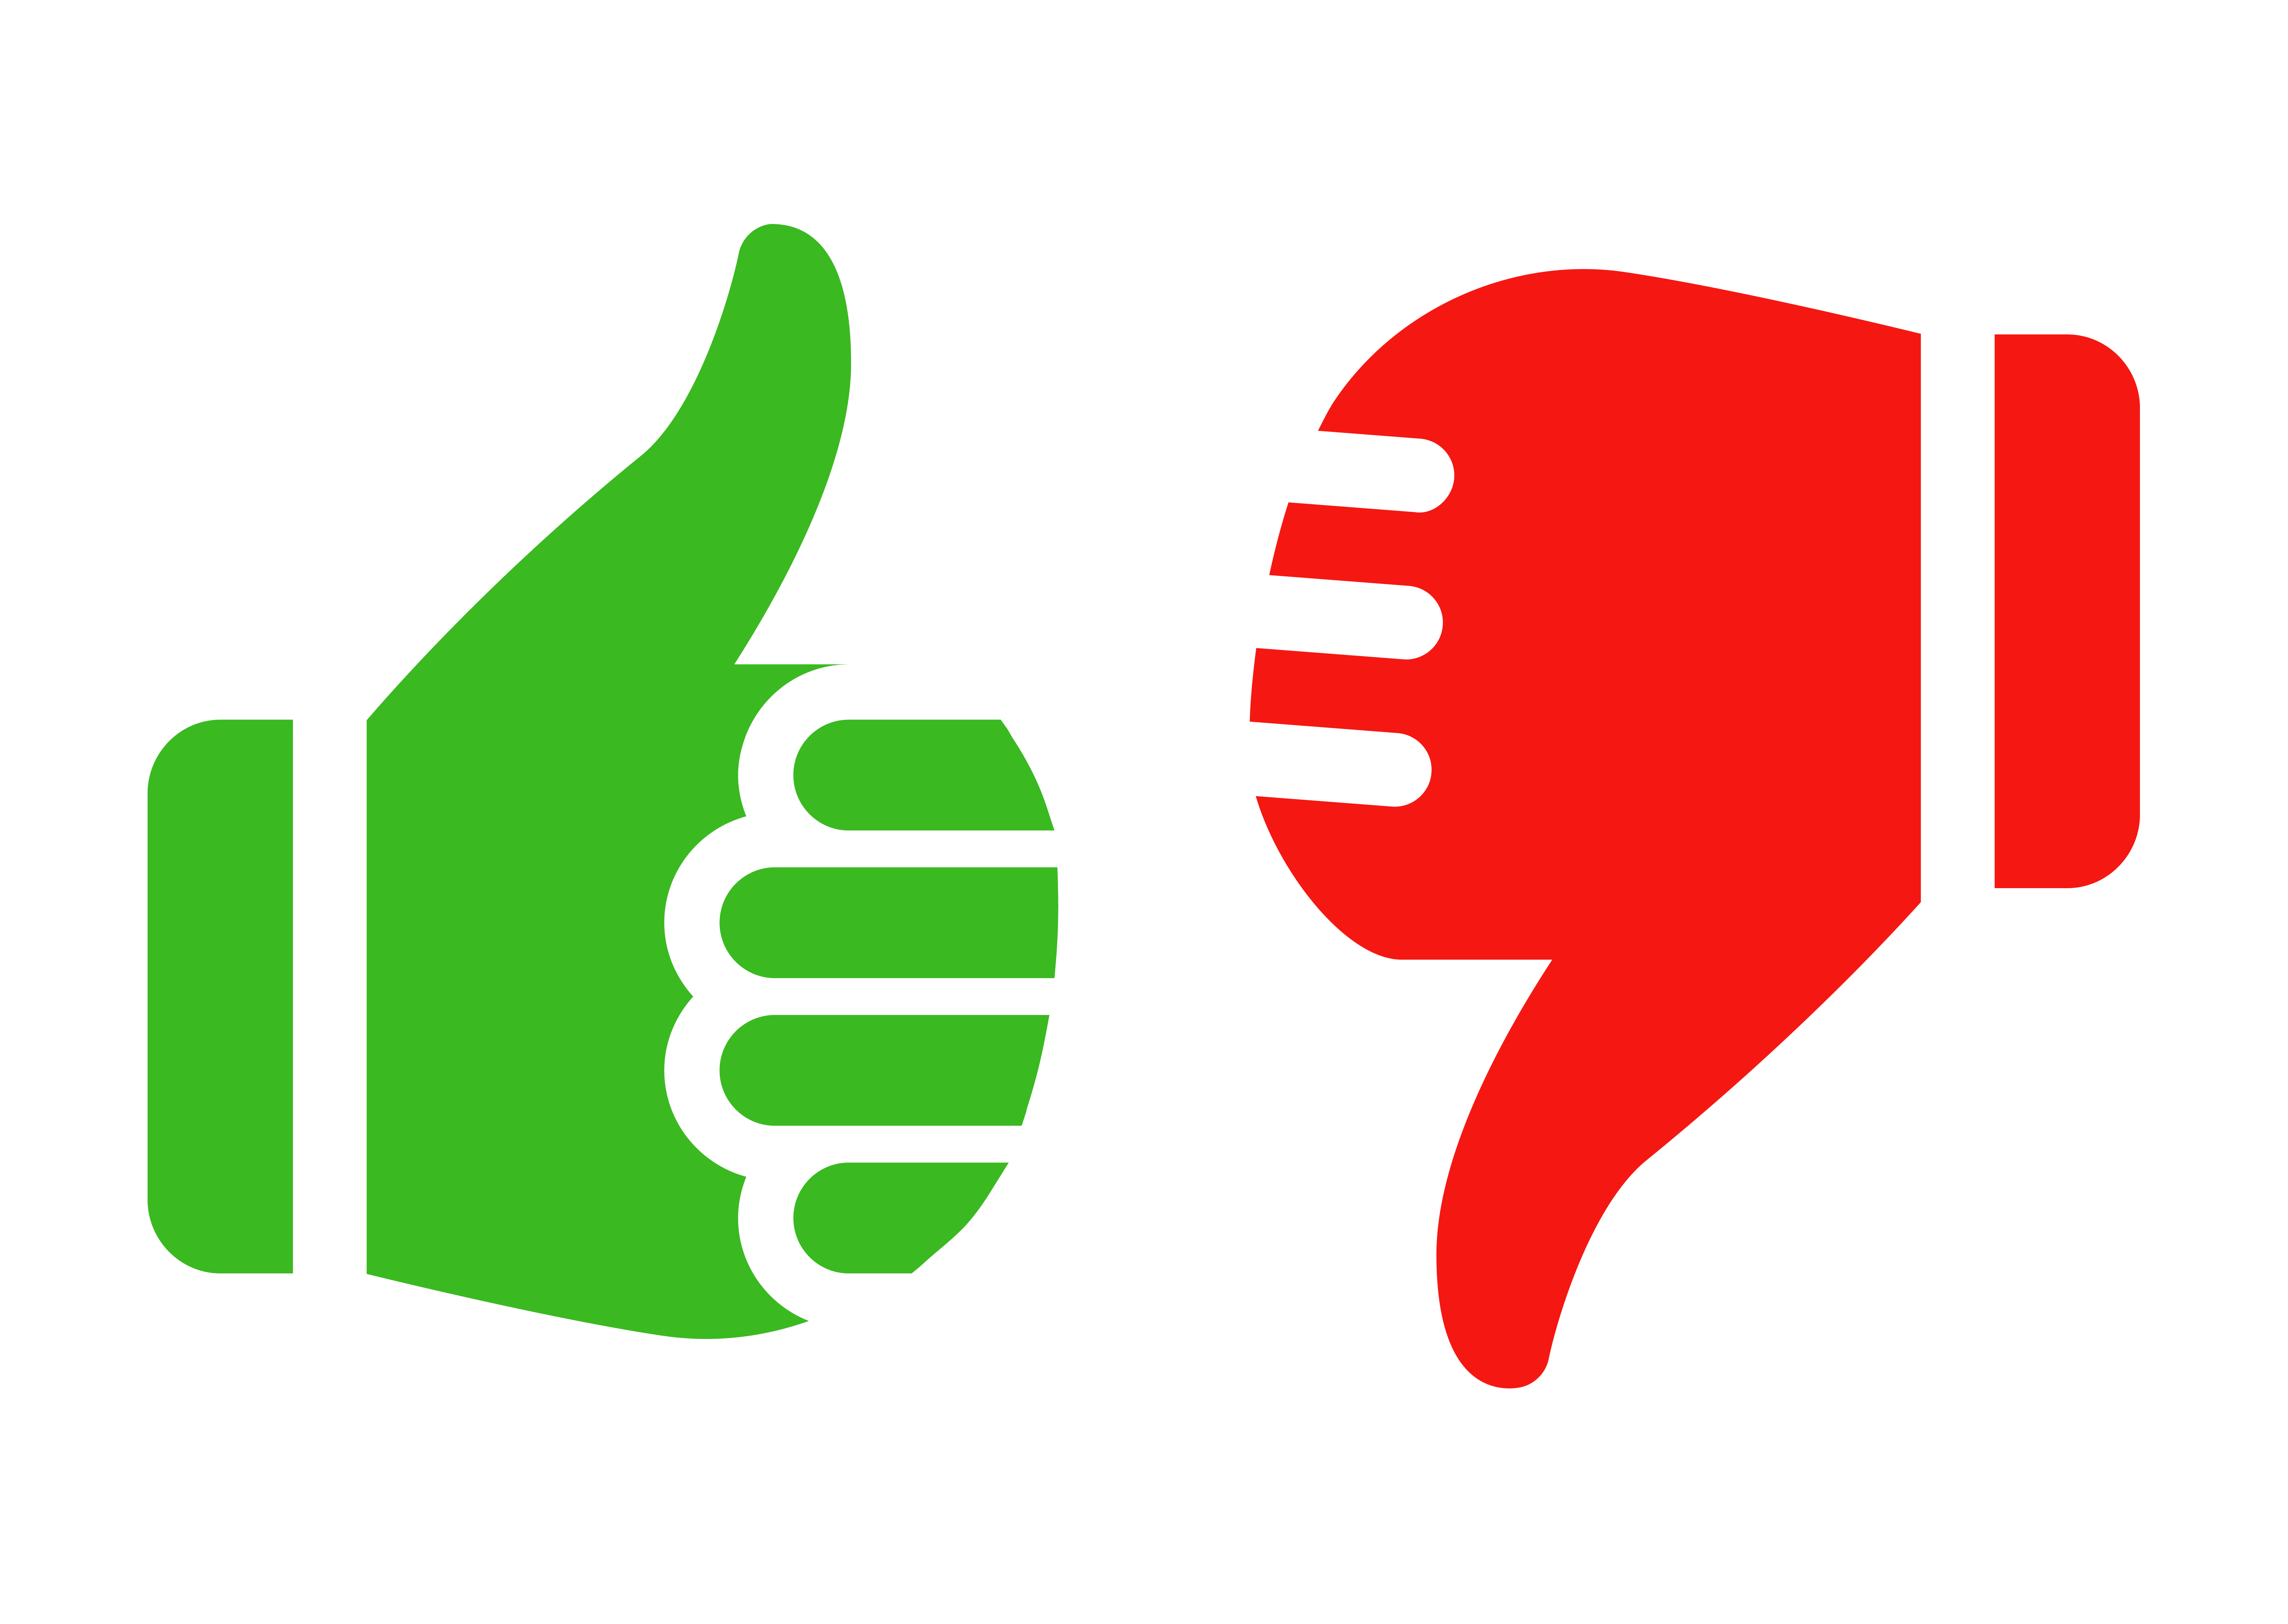 Thumbs up or down clipart banner library stock 90+ Thumbs Up Thumbs Down Clipart   ClipartLook banner library stock